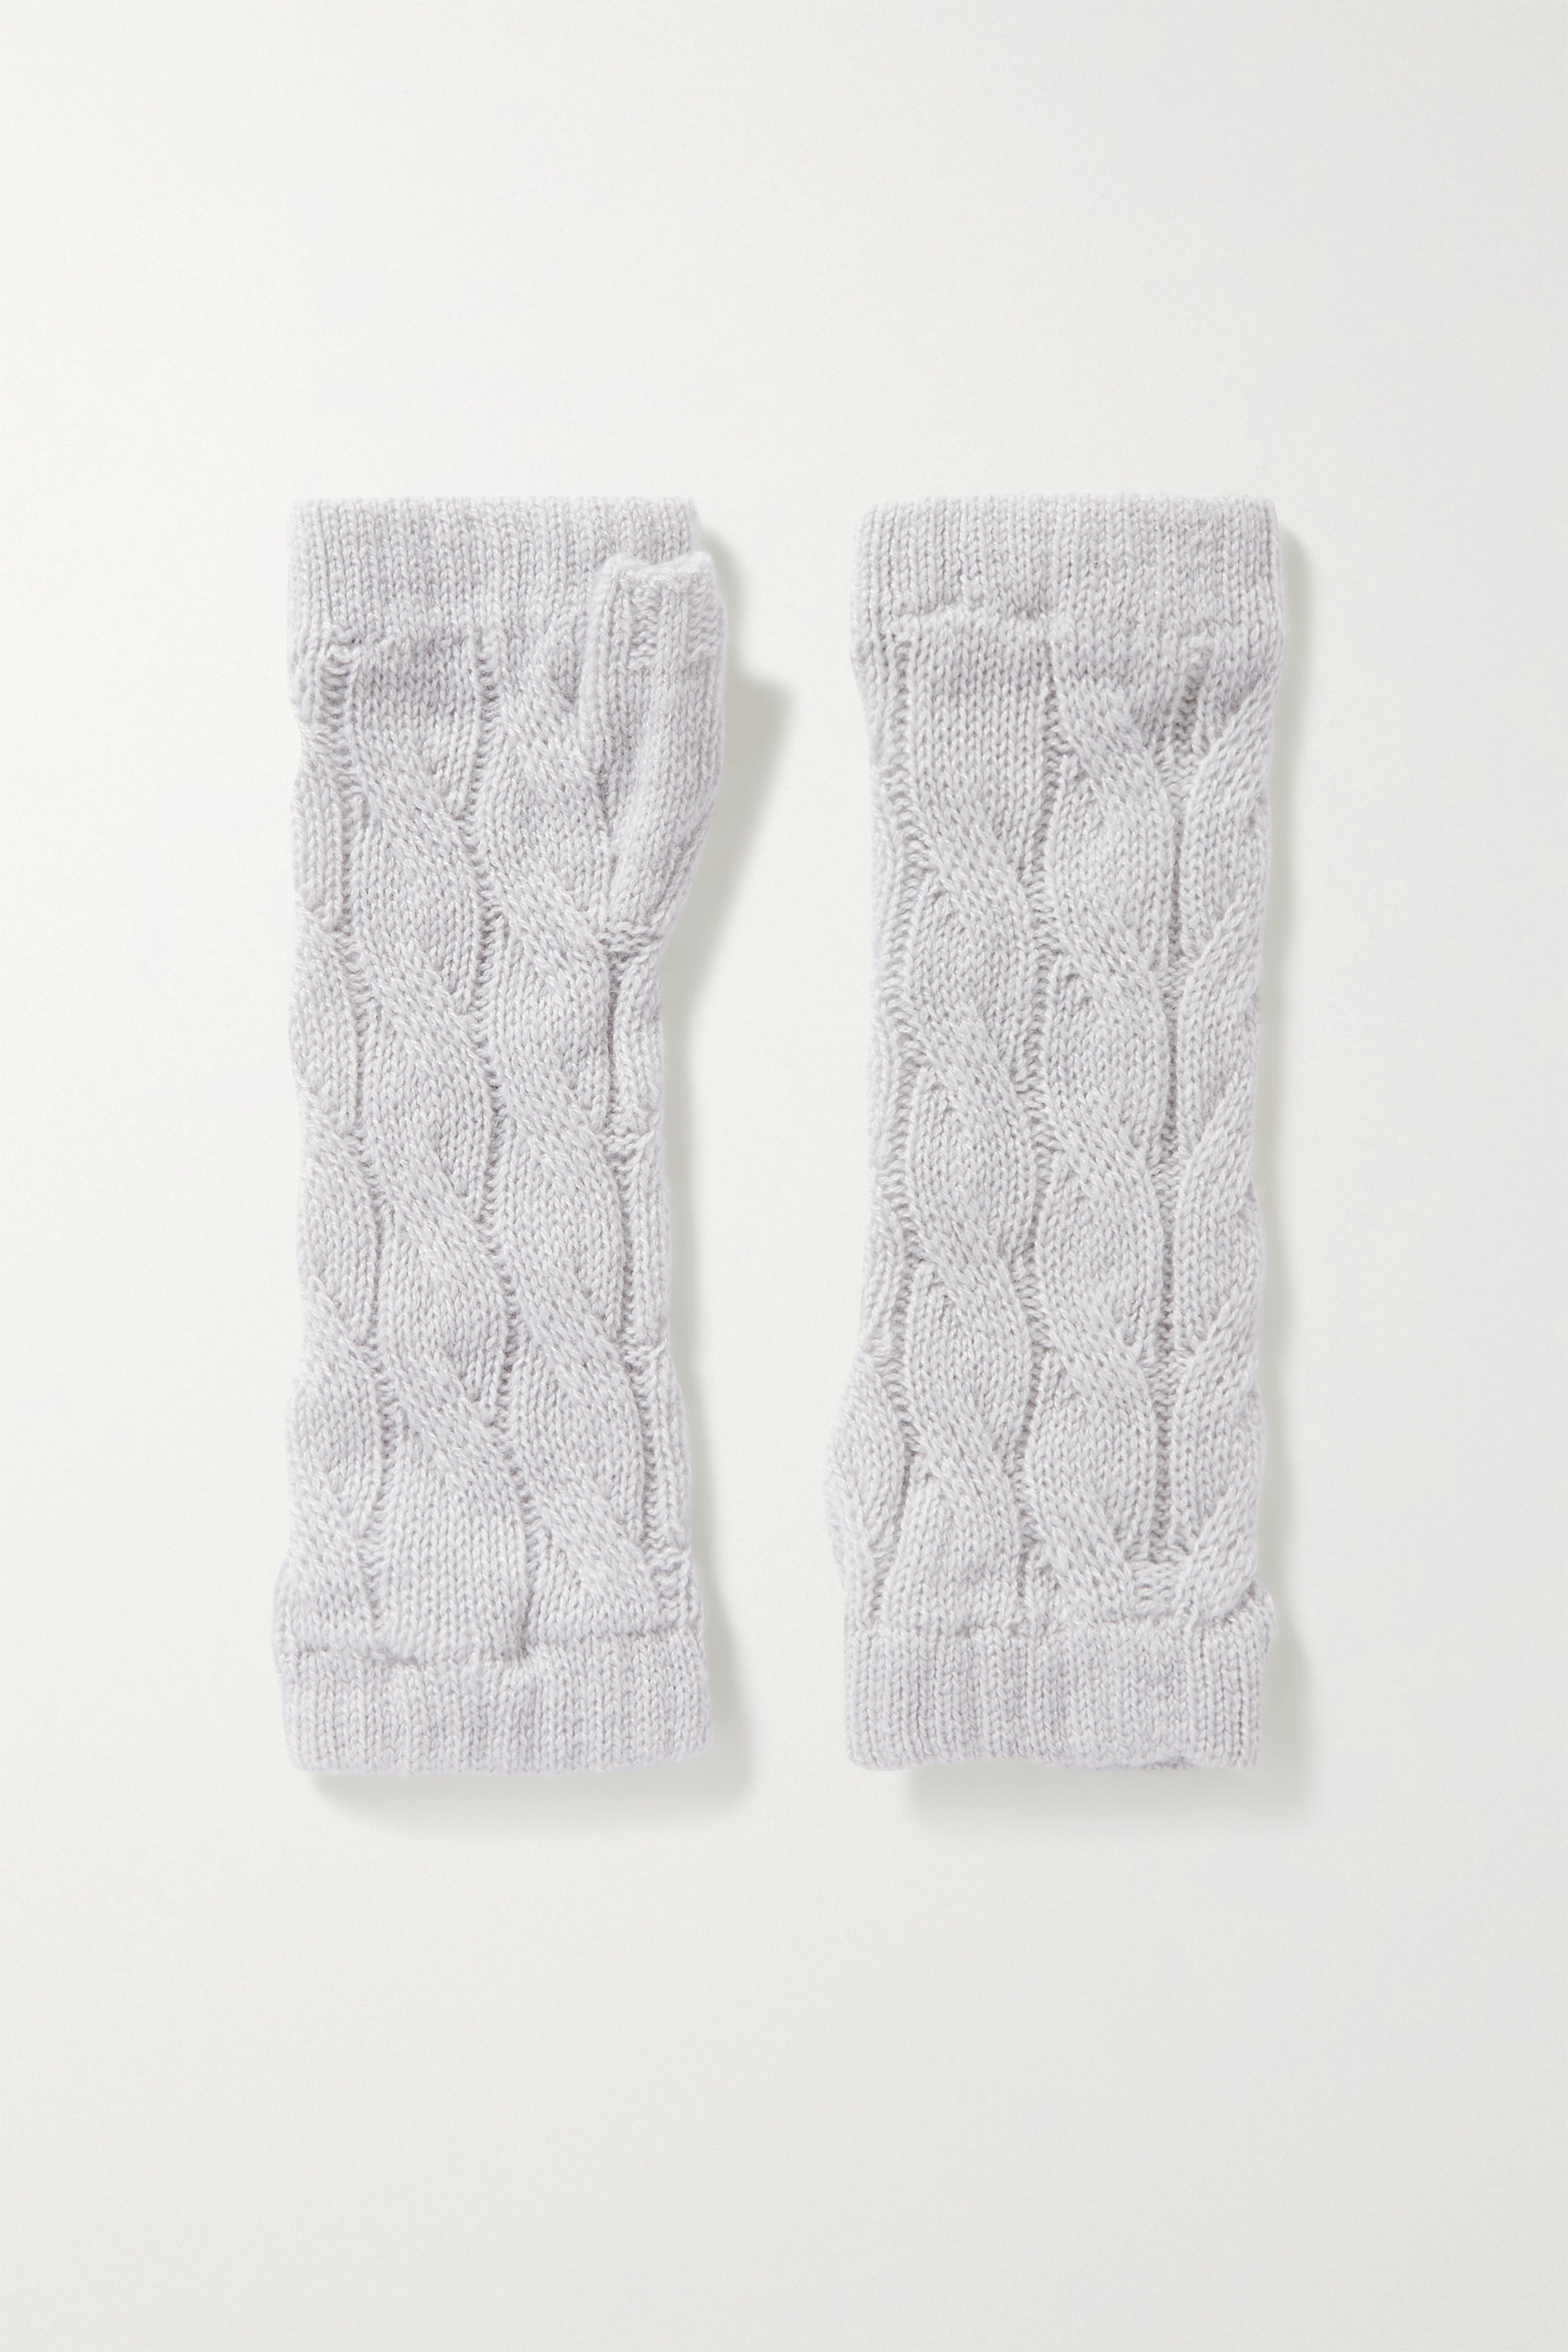 JOHNSTONS OF ELGIN + NET SUSTAIN cable-knit cashmere wrist warmers